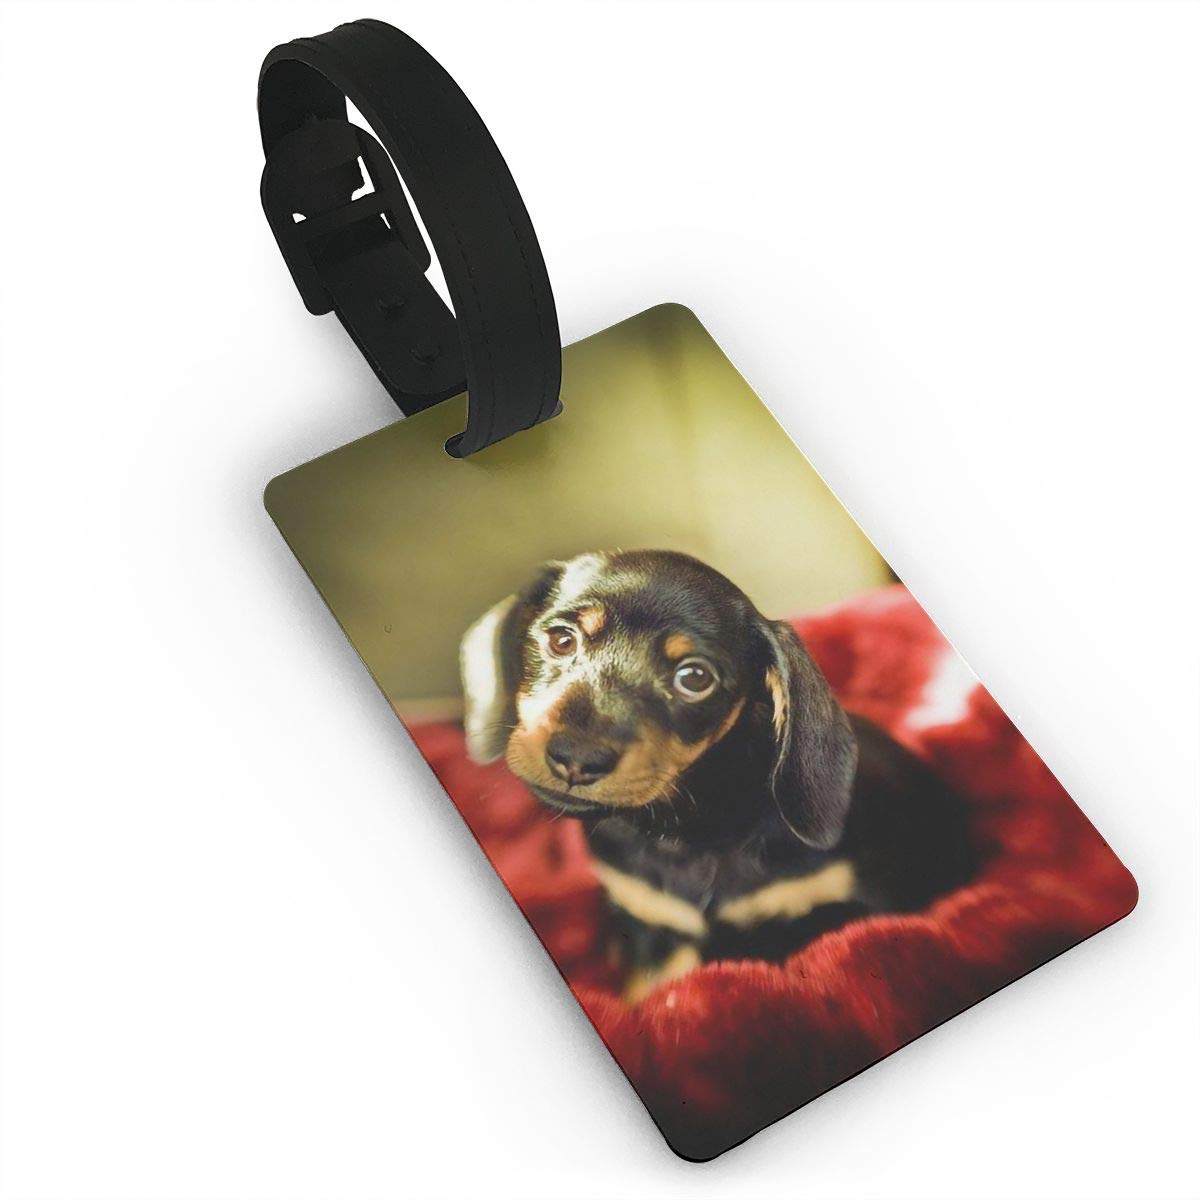 Dachshund Wiener Dog Cruise Luggage Tag For Suitcase Bag Accessories 2 Pack Luggage Tags